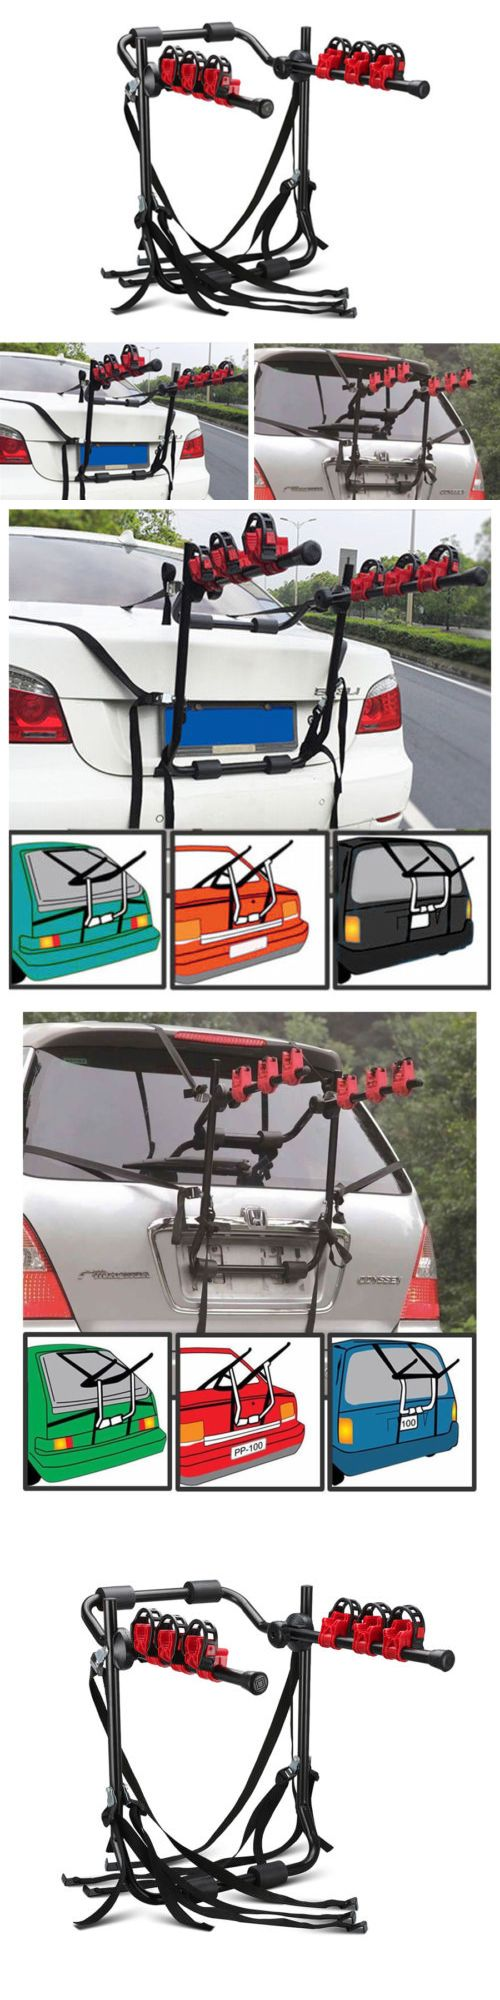 Car and truck racks 177849 3 bicycle trunk mount portable bike carrier rack